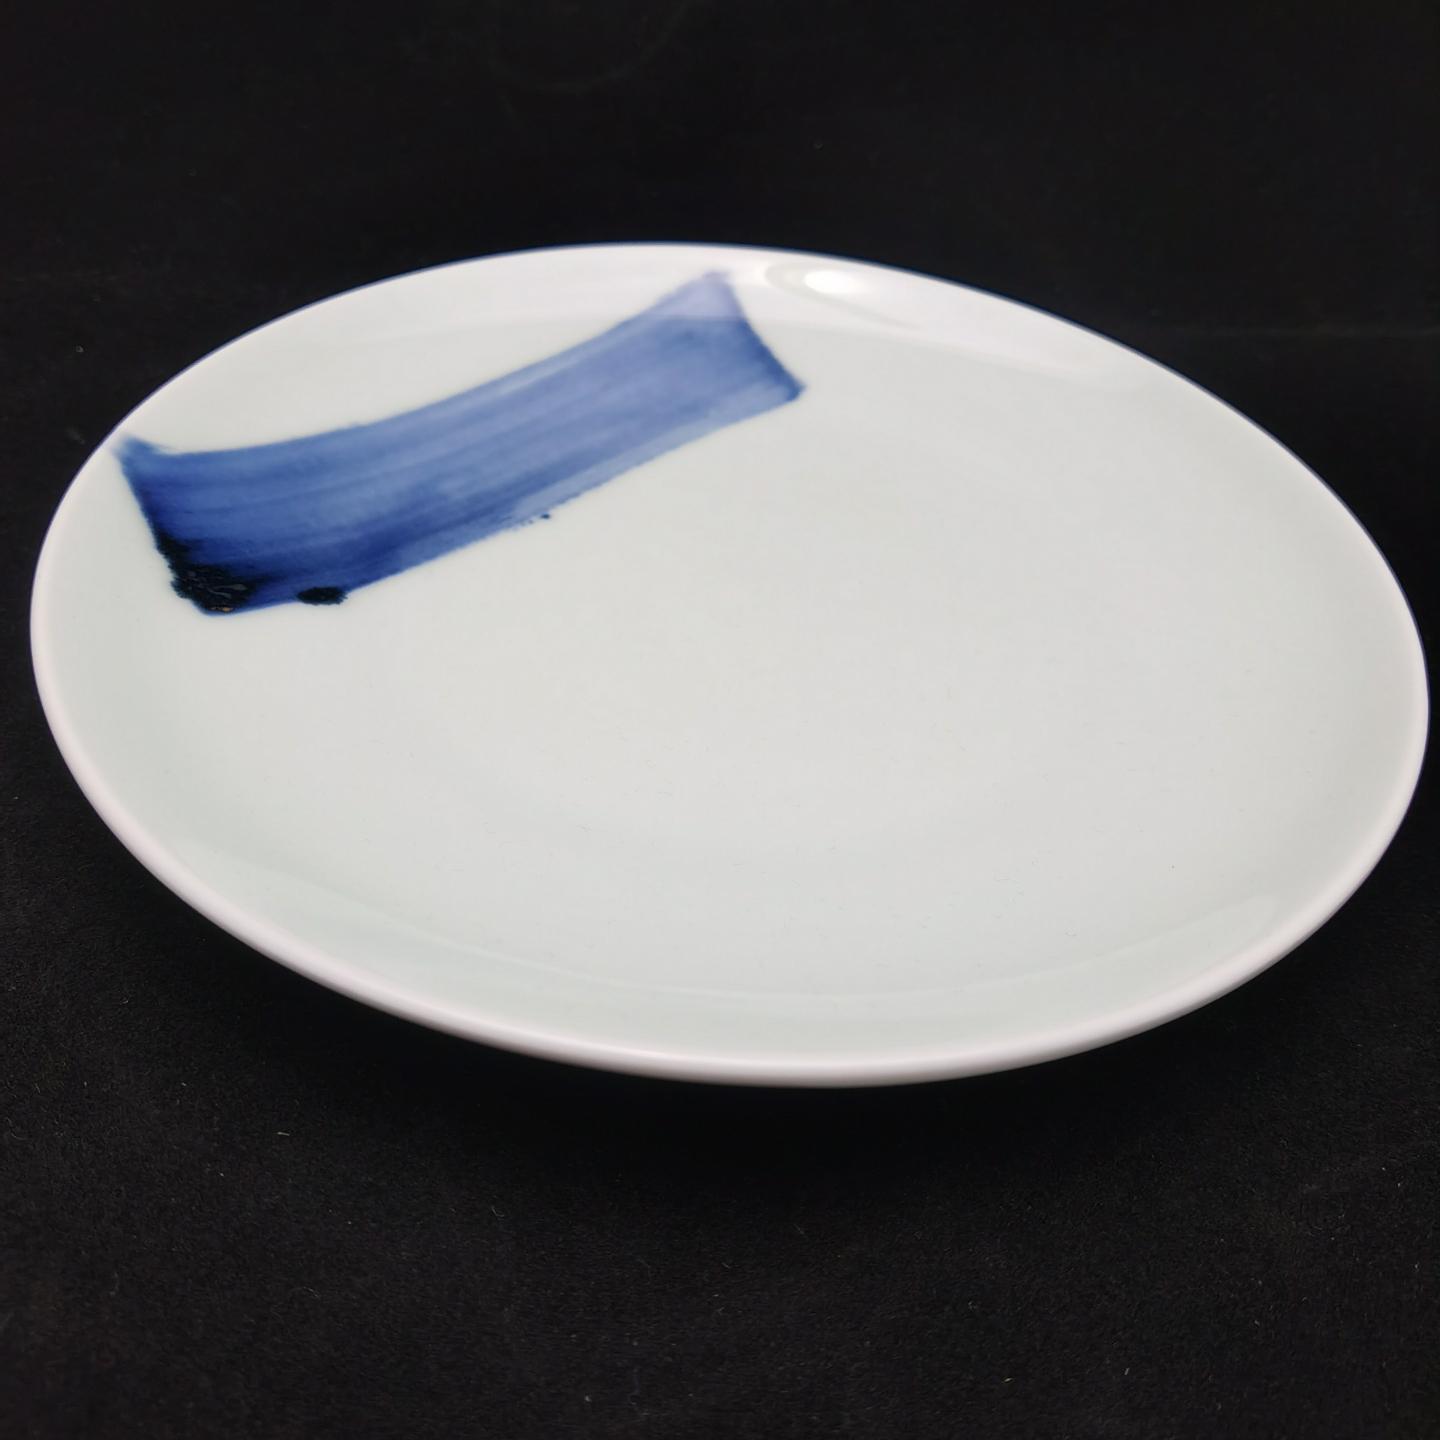 China Blue Brush Stroke Round Plate - (270mm)